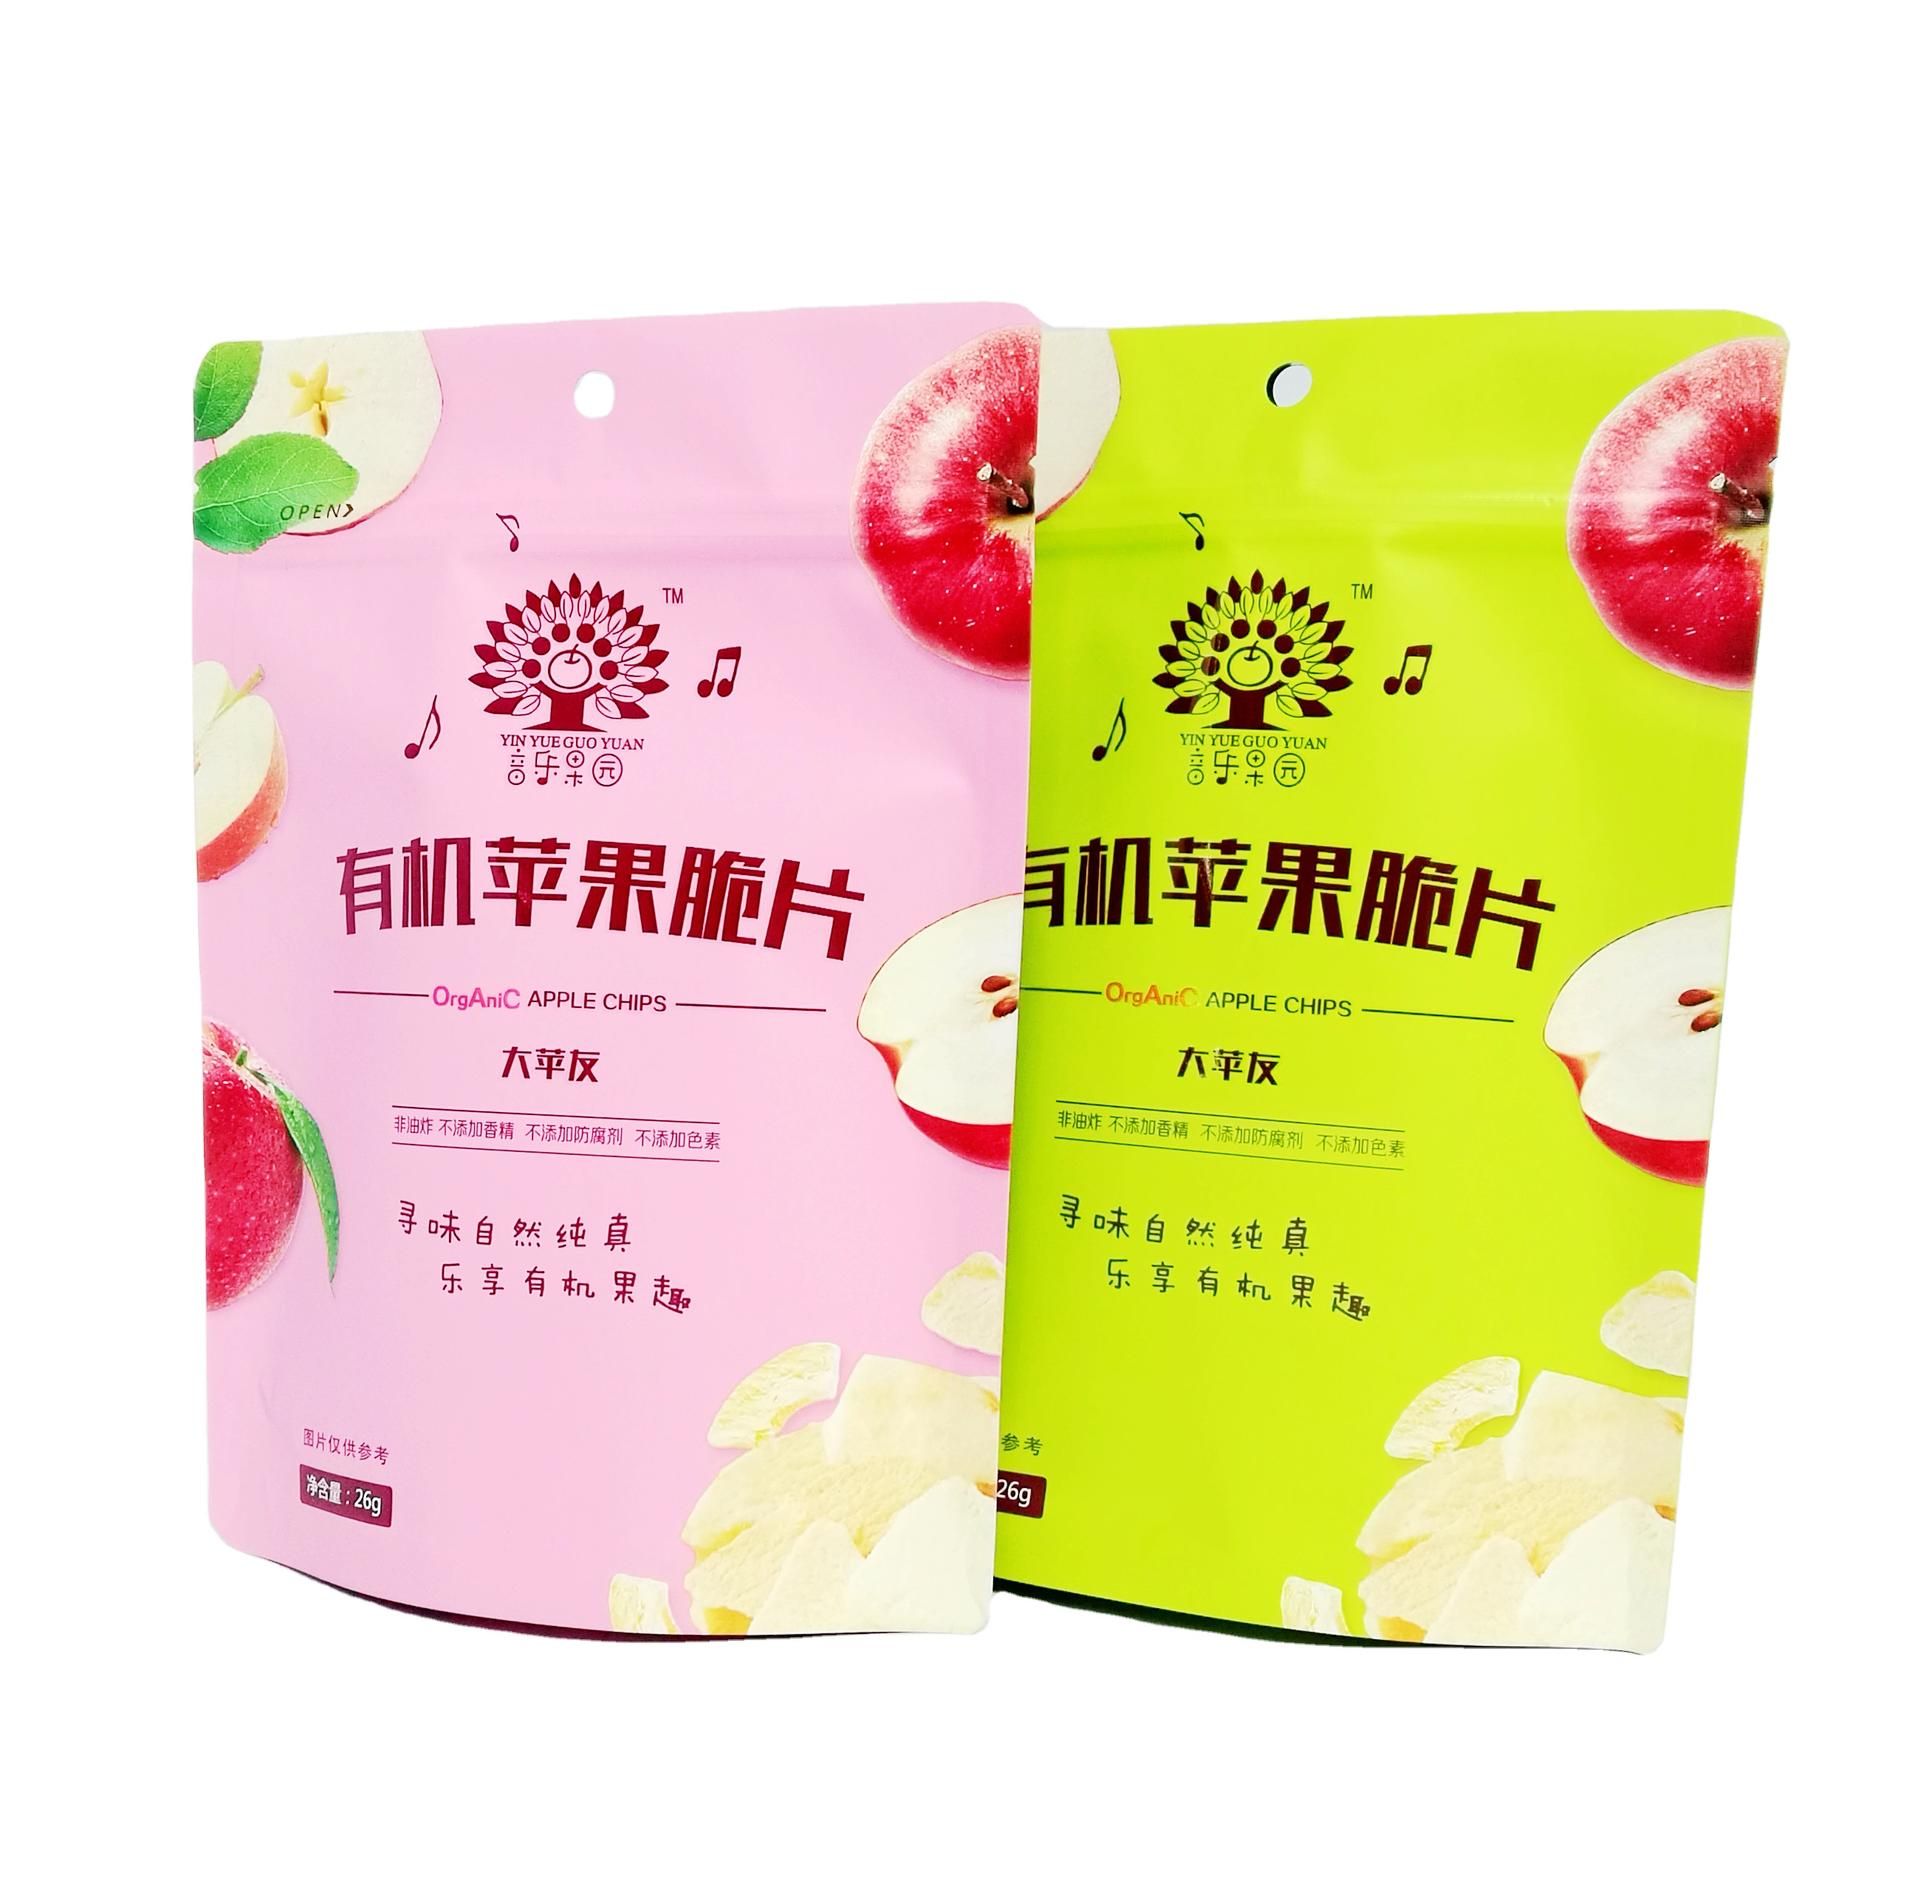 zipper bag stand up pouch for dried fruit packaging